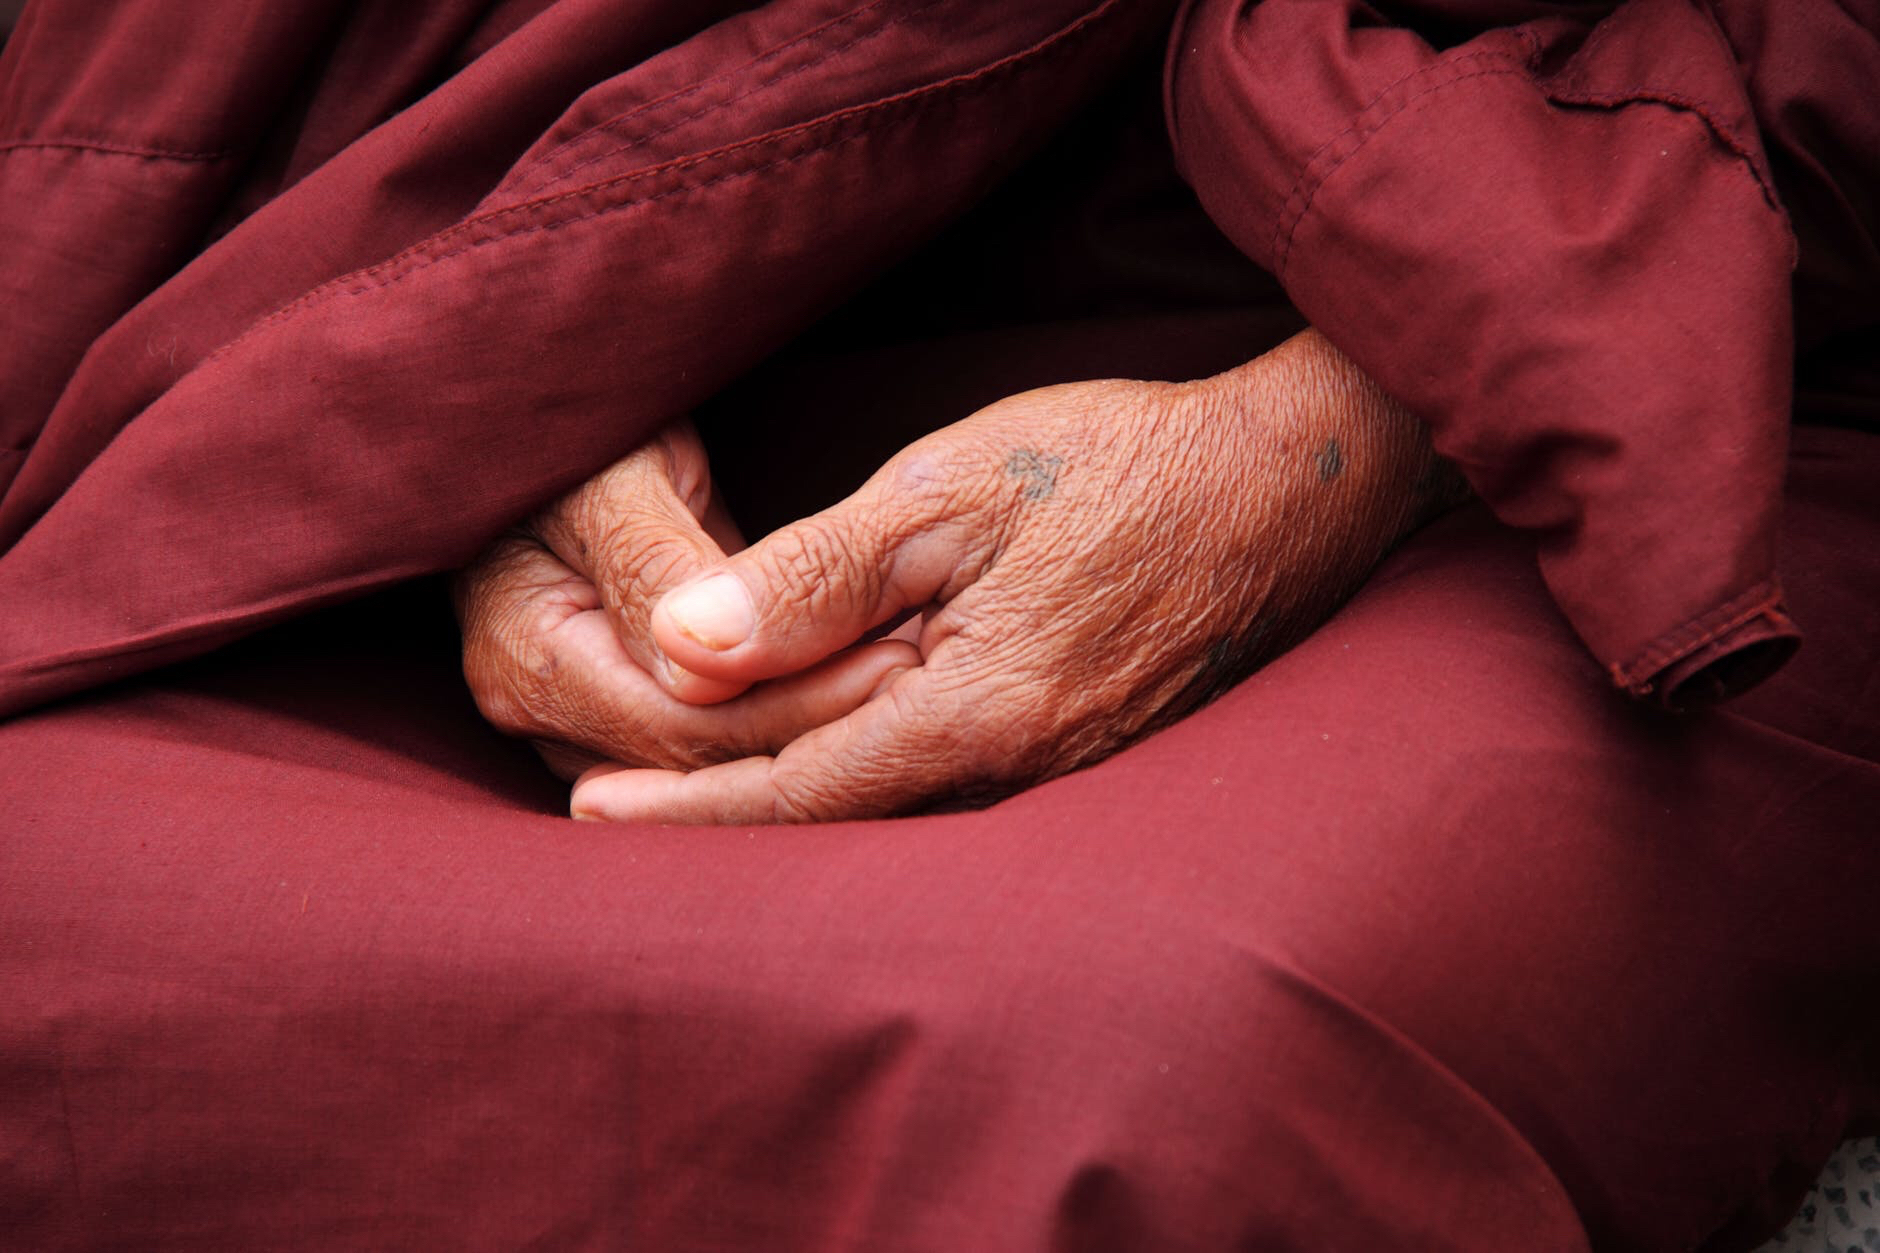 monk-hands-faith-person-45178